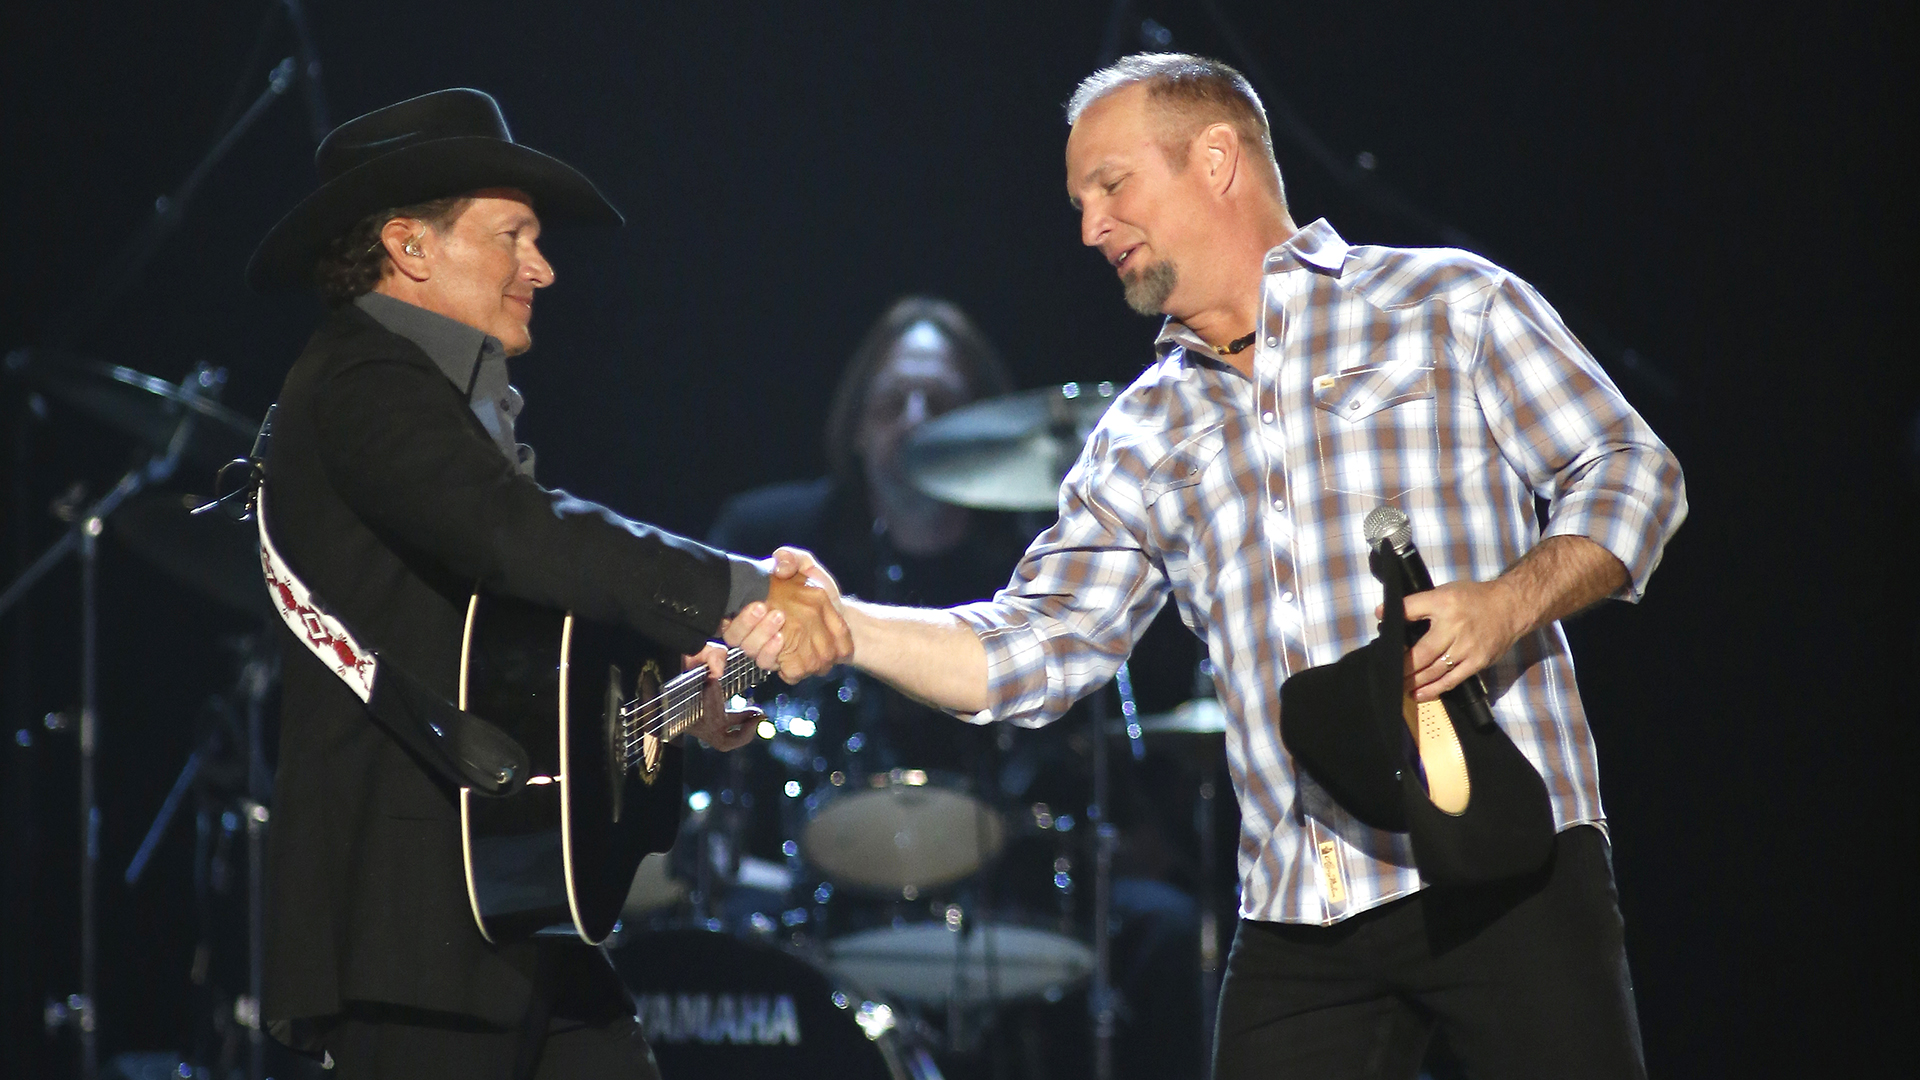 31. Garth Brooks and George Strait perform